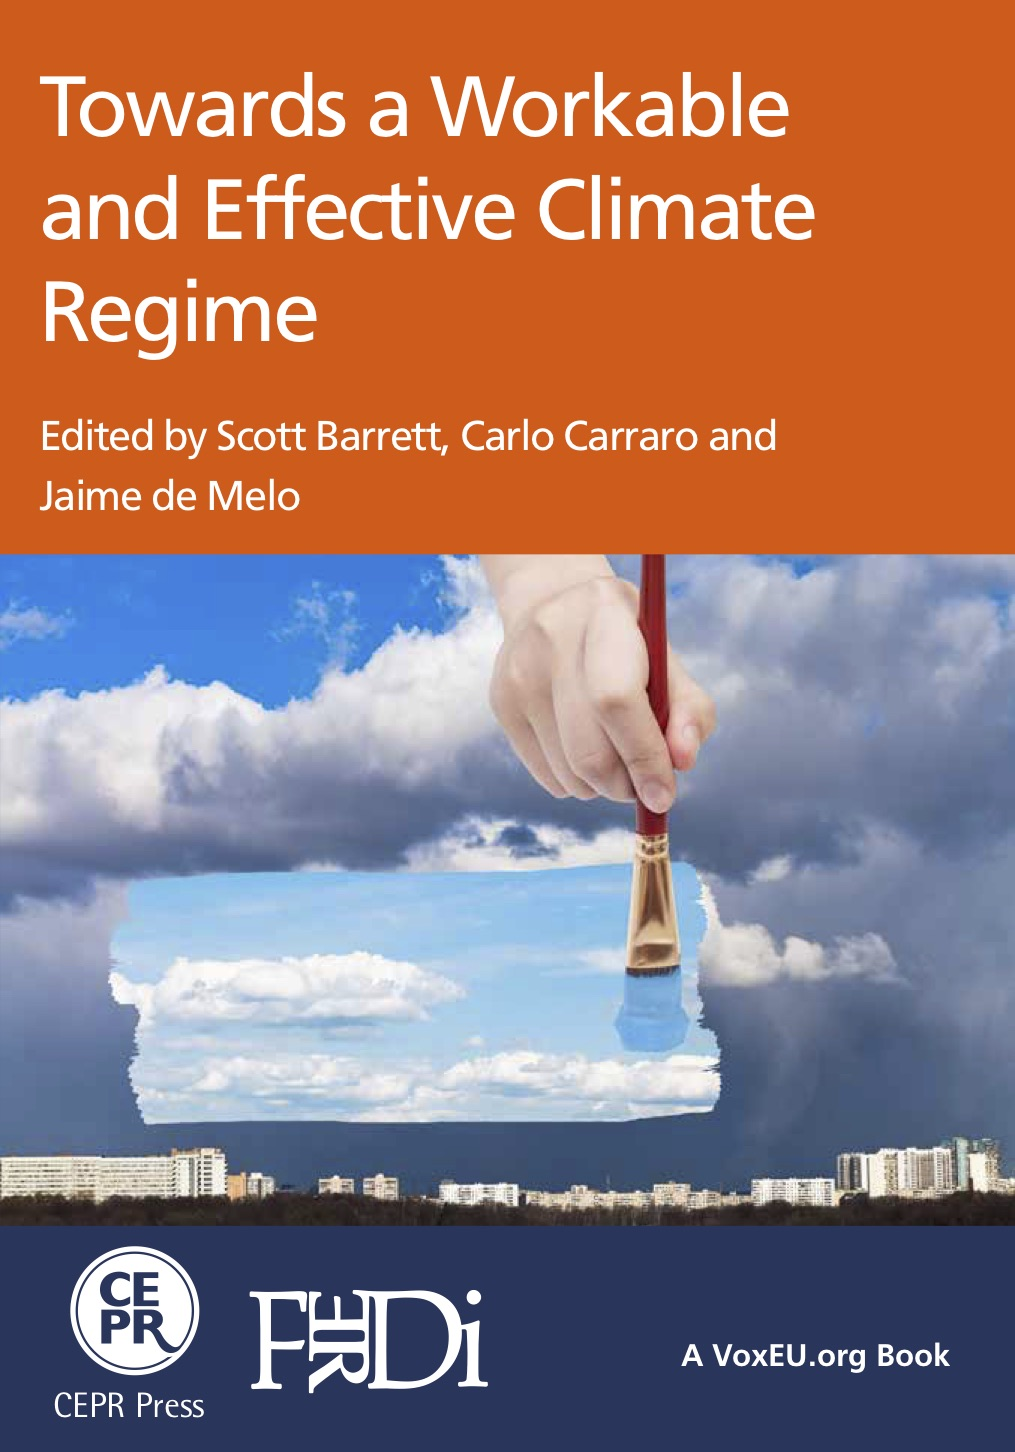 Towards a Workable and Effective Climate Regime , CEPR and FERDI eBook, 2015.  Co-edited with Carlo Carraro and Jaime de Melo